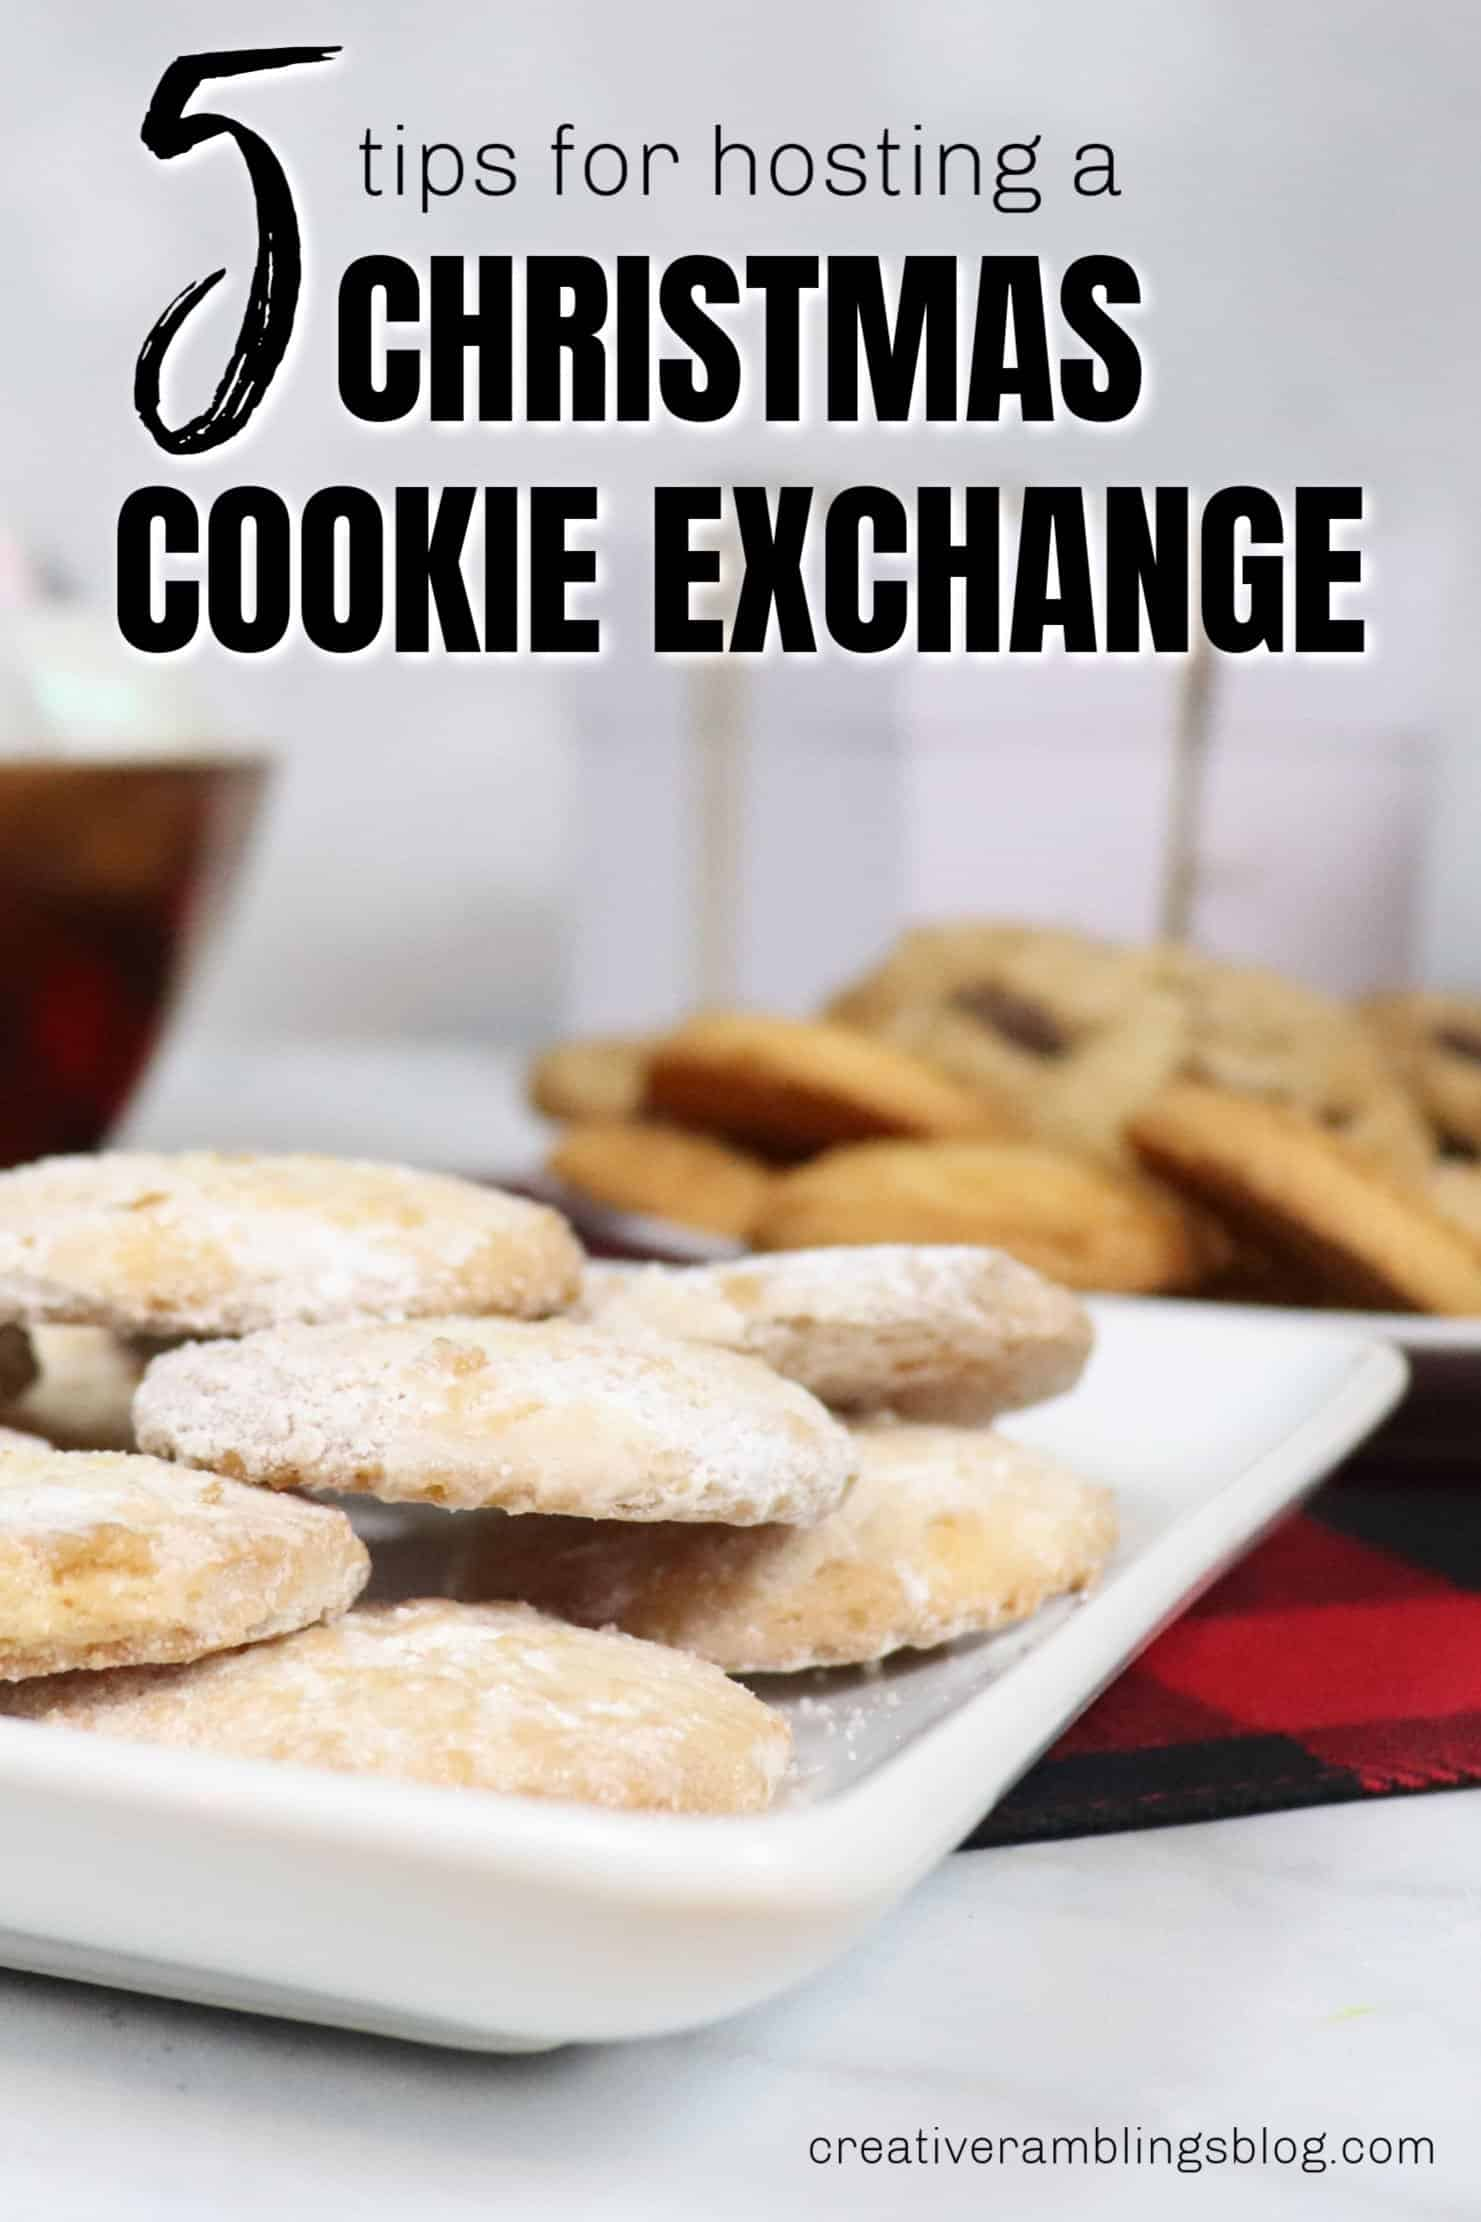 5 Tips for Hosting a Christmas Cookie Exchange pin